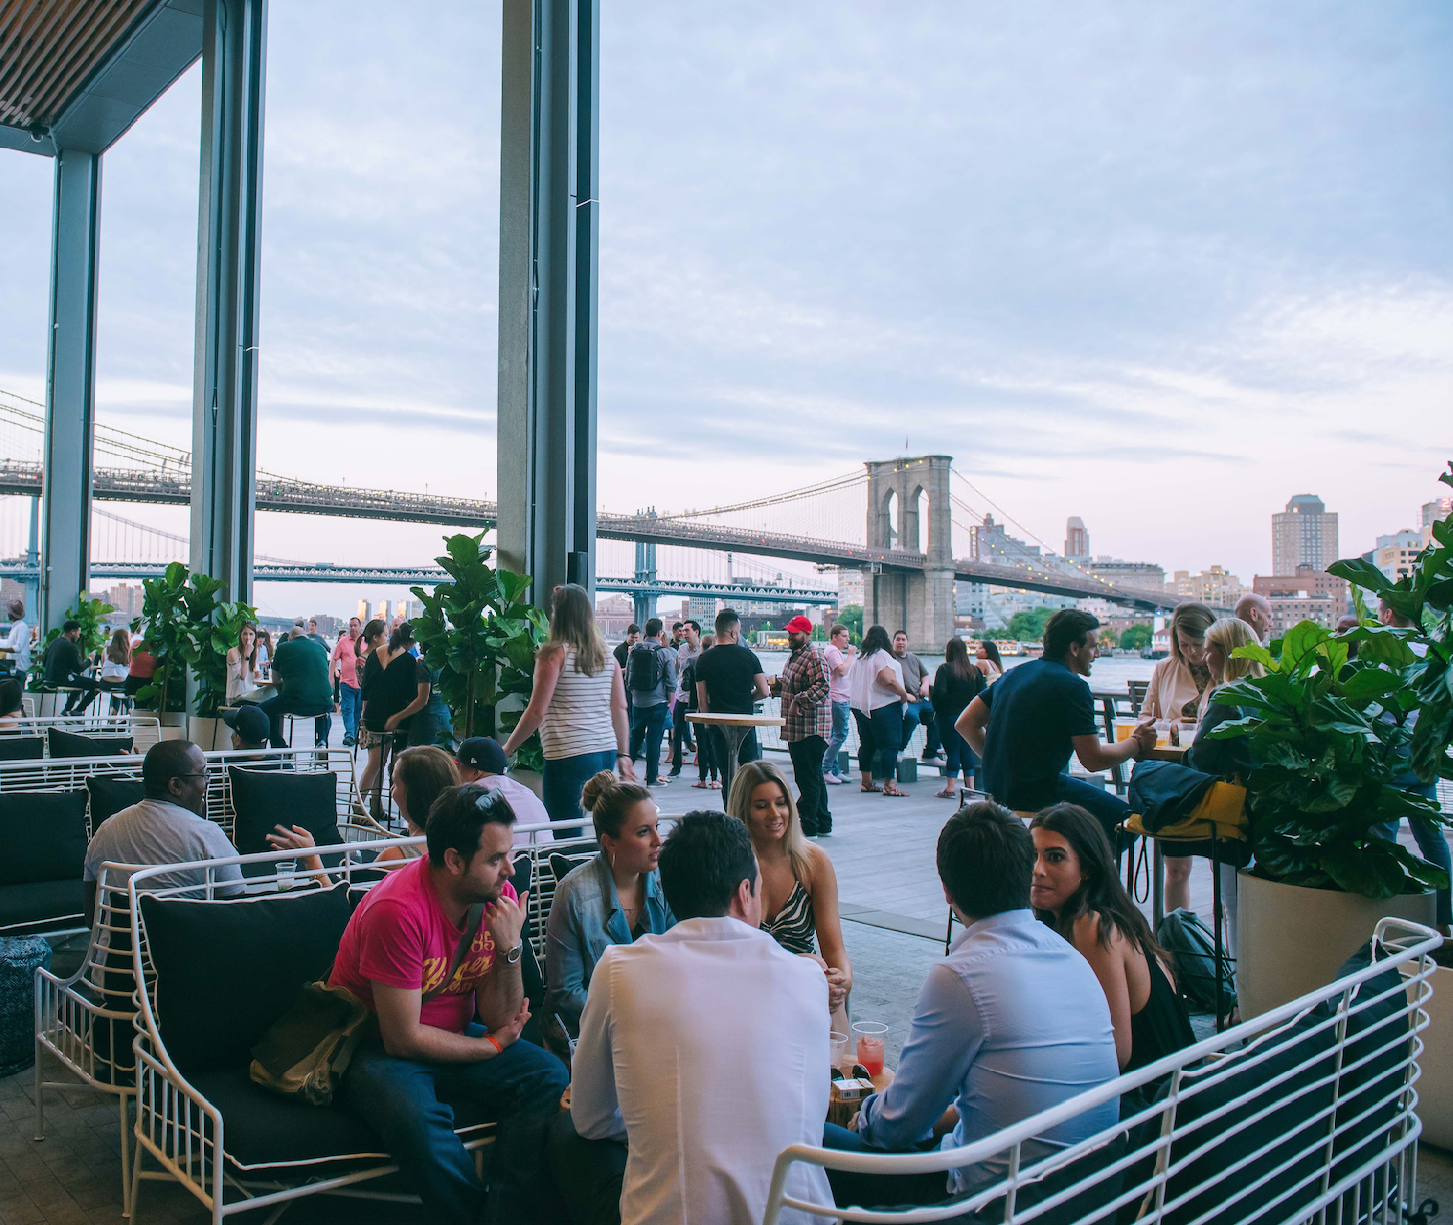 One of the daily draws to the Seaport District is Pier 17's Heineken Riverdeck and River Lounge.